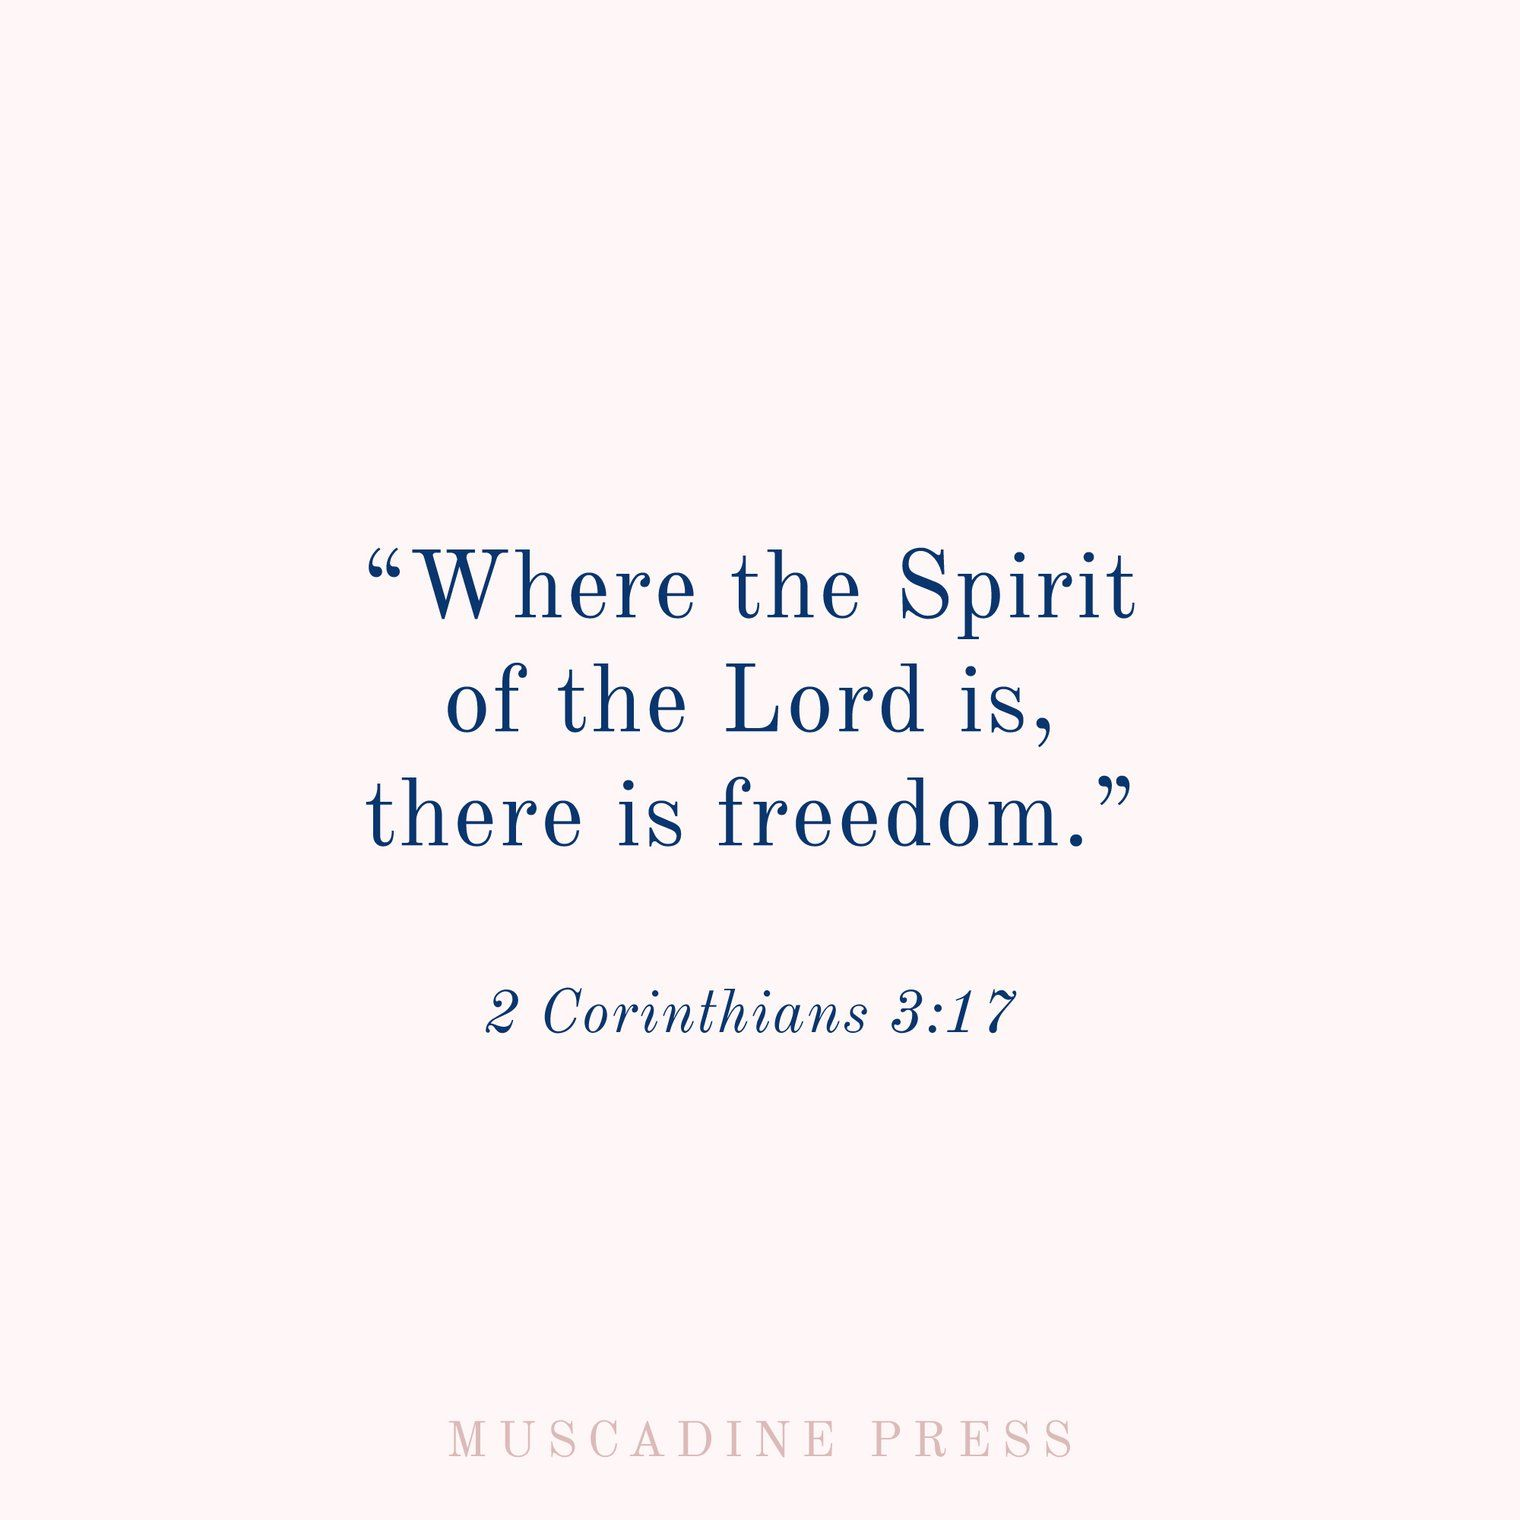 Where The Spirit Of The Lord Is There Is Freedom Freedom Bible Verse Freedom Verses Lord Quote